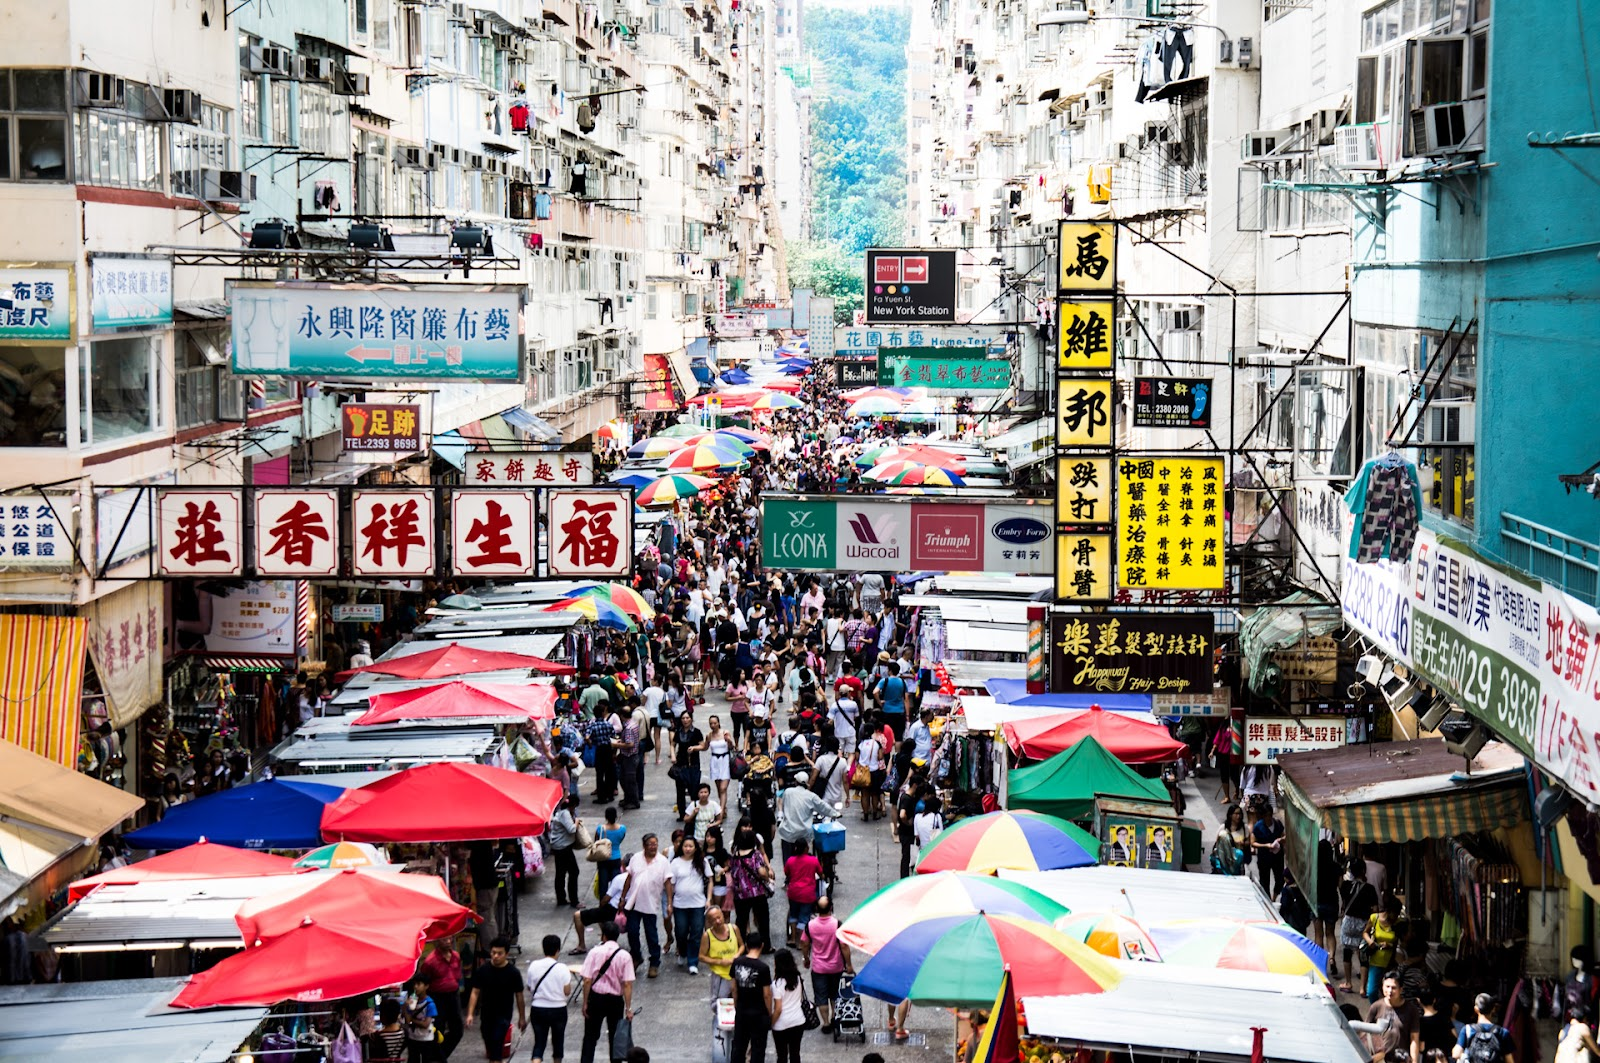 Shopping in Mong Kok. Hong Kong   Innovation in Technology and Business   oneminutemile